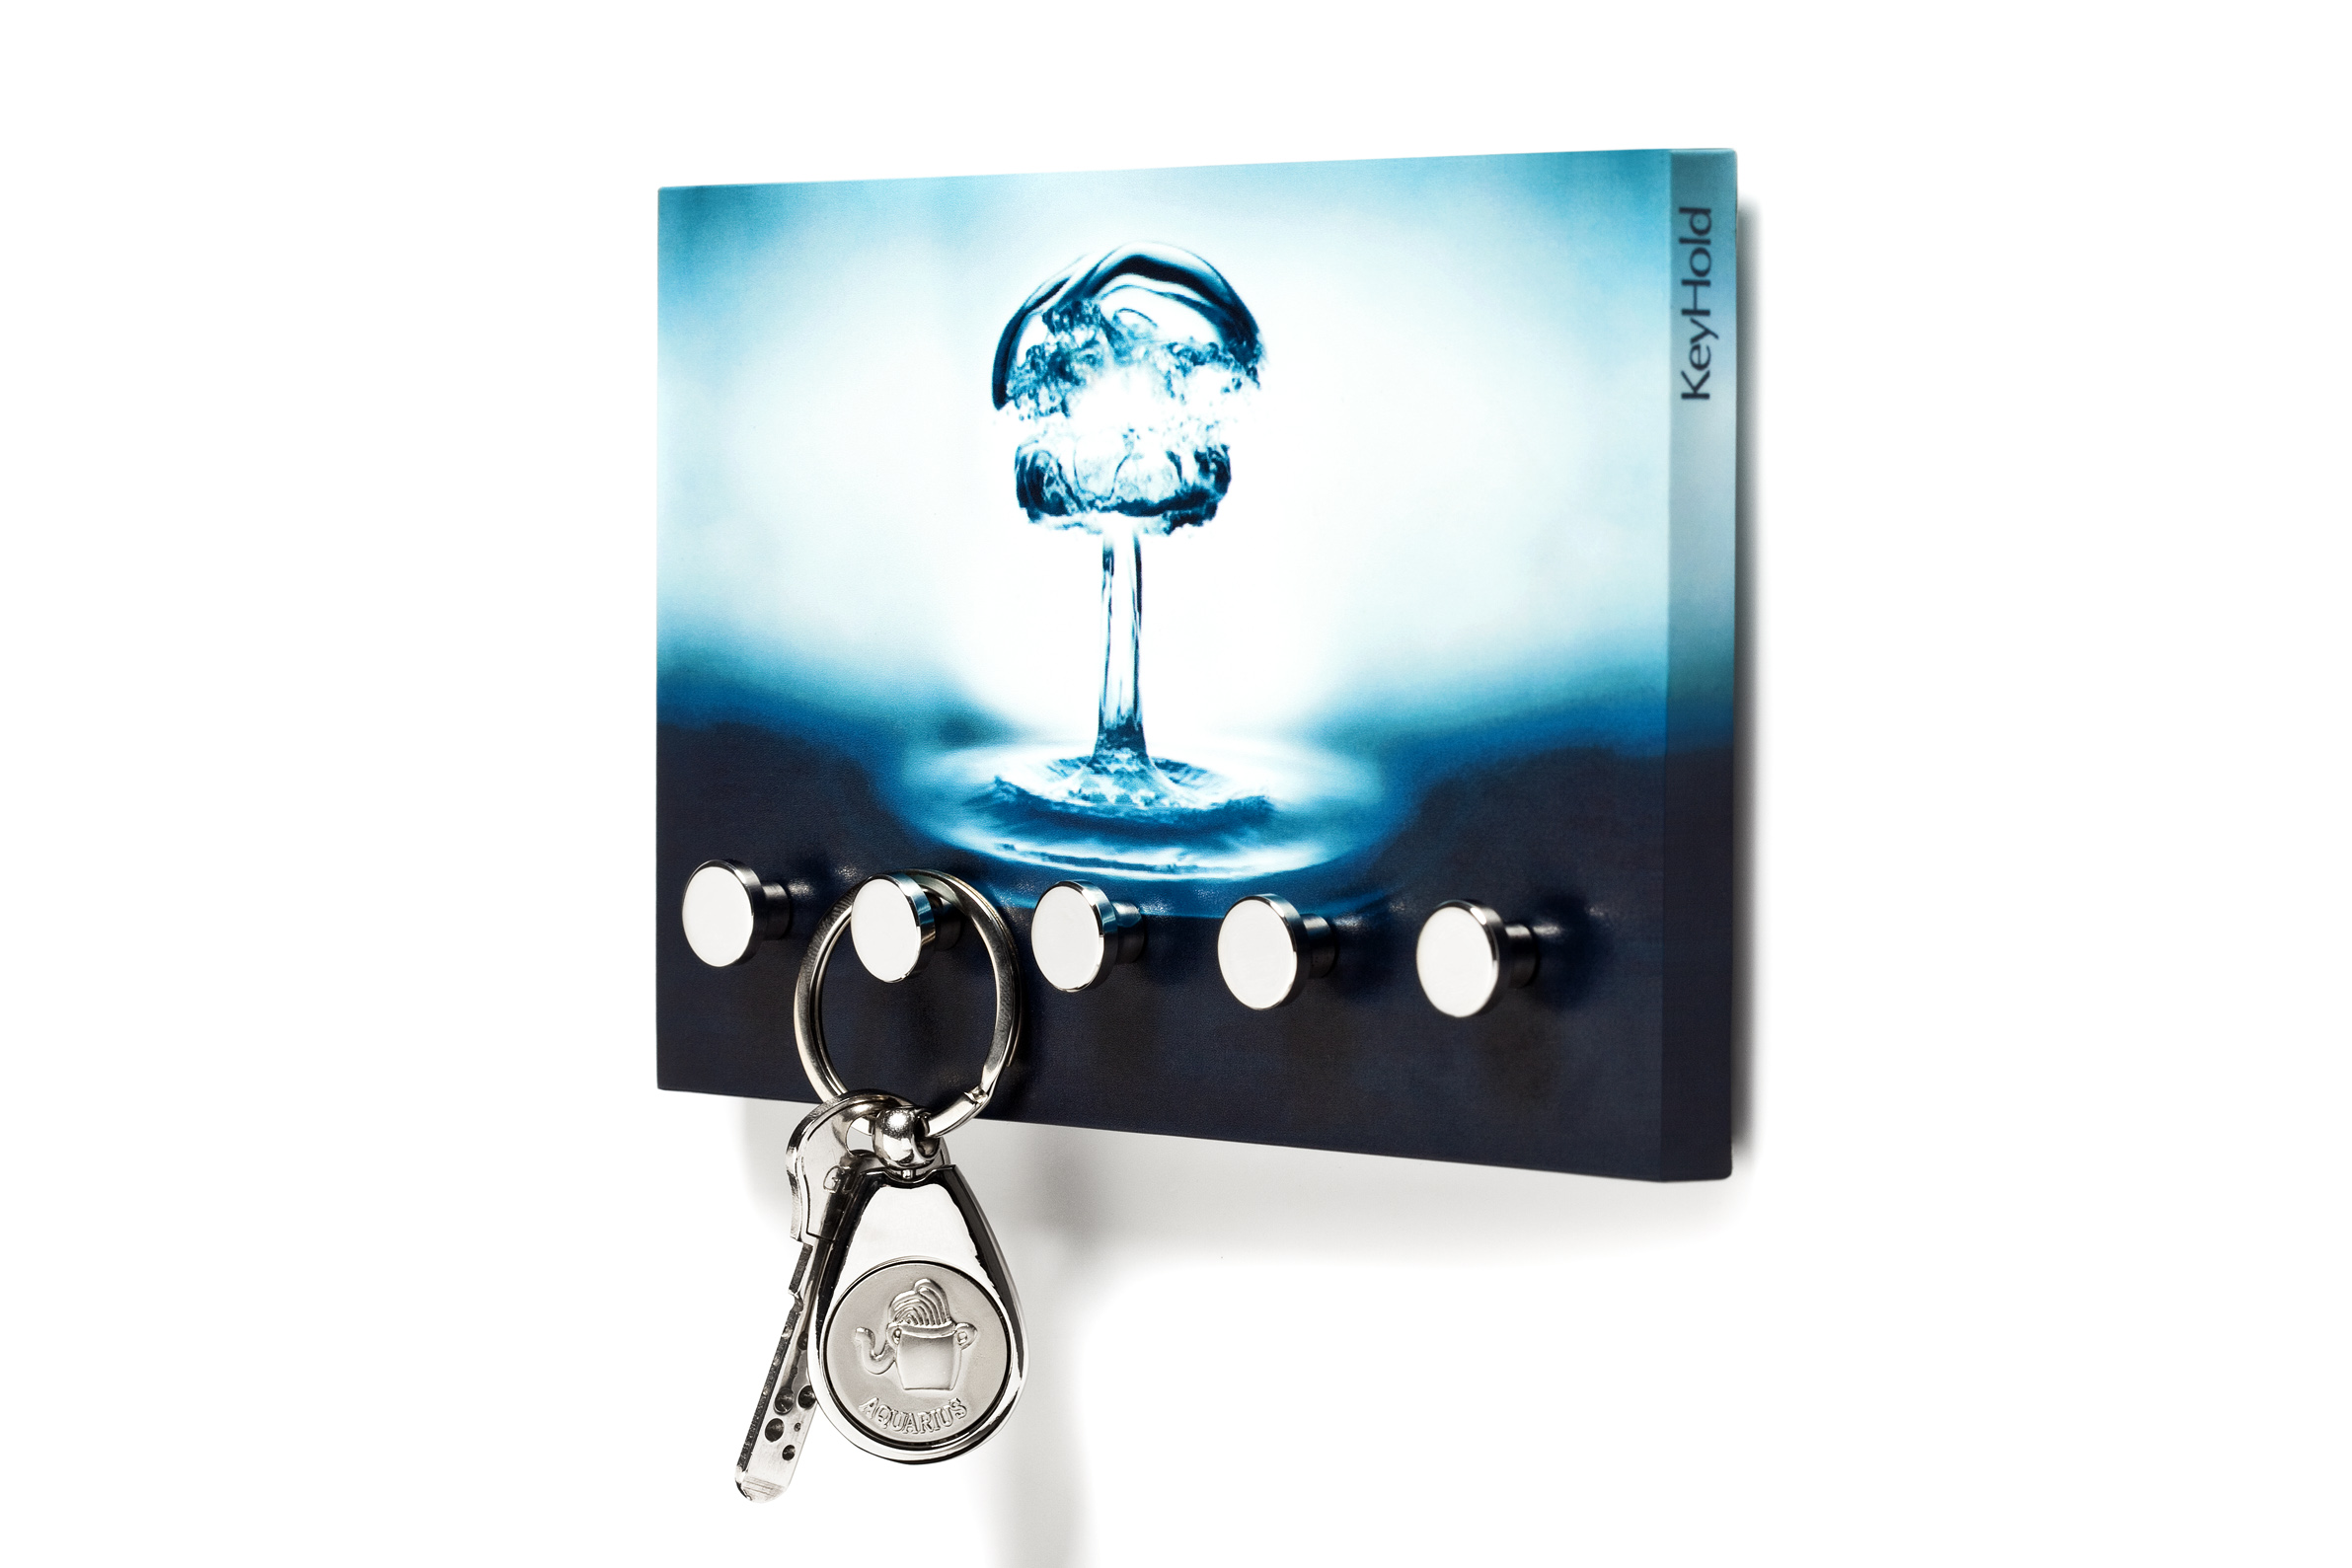 Regis Keyhold Wall Key Chain Holder Hanger Vivid Splash